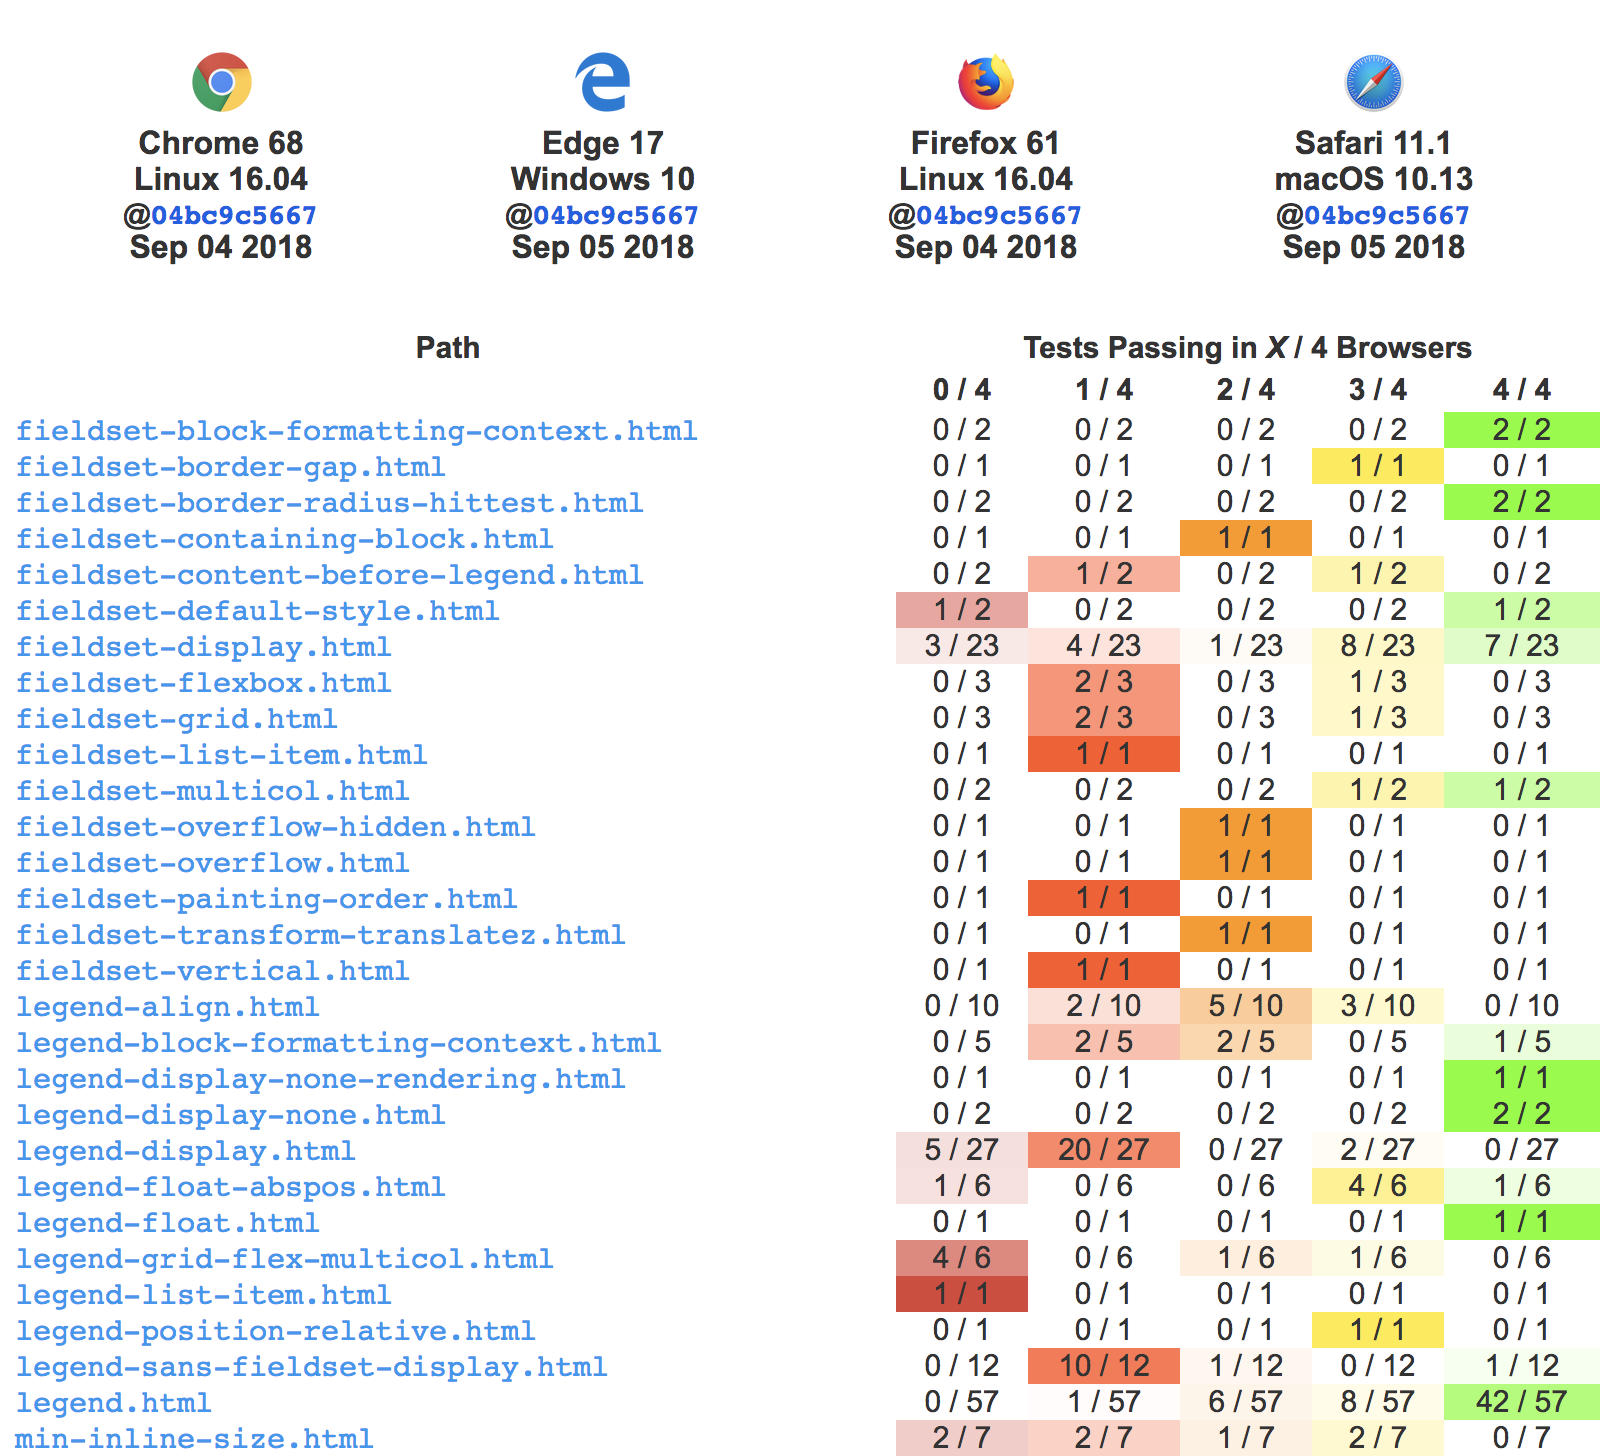 The results for fieldset and legend tests show some tests failing in all browsers, some tests passing in all browsers, and some passing and failing in different browsers.